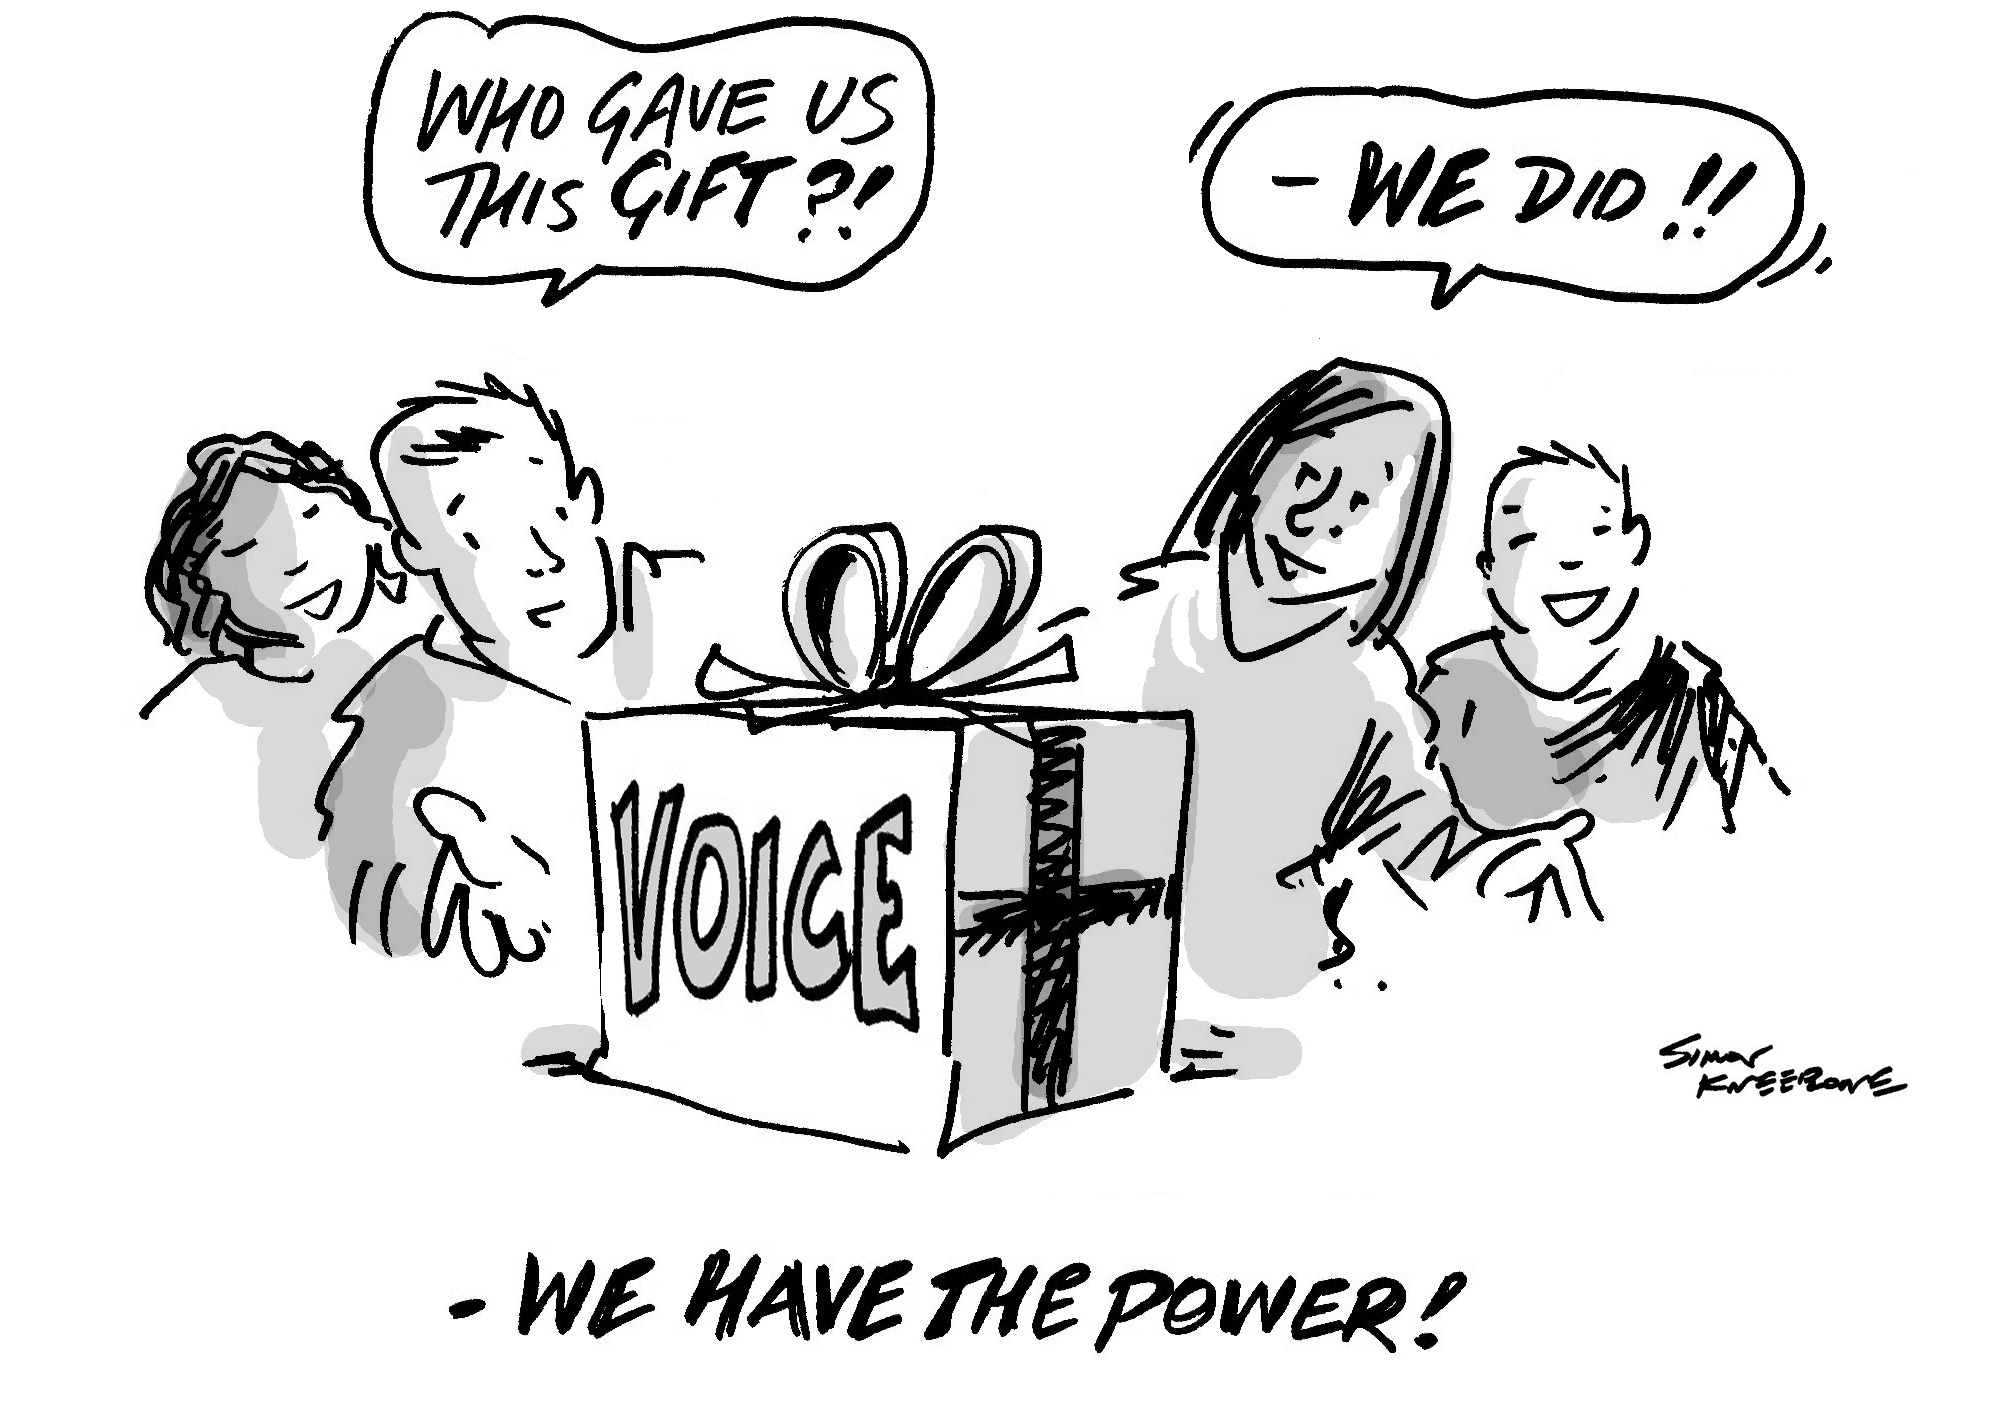 Our Voice cartoon shows people with a gift of their own voices